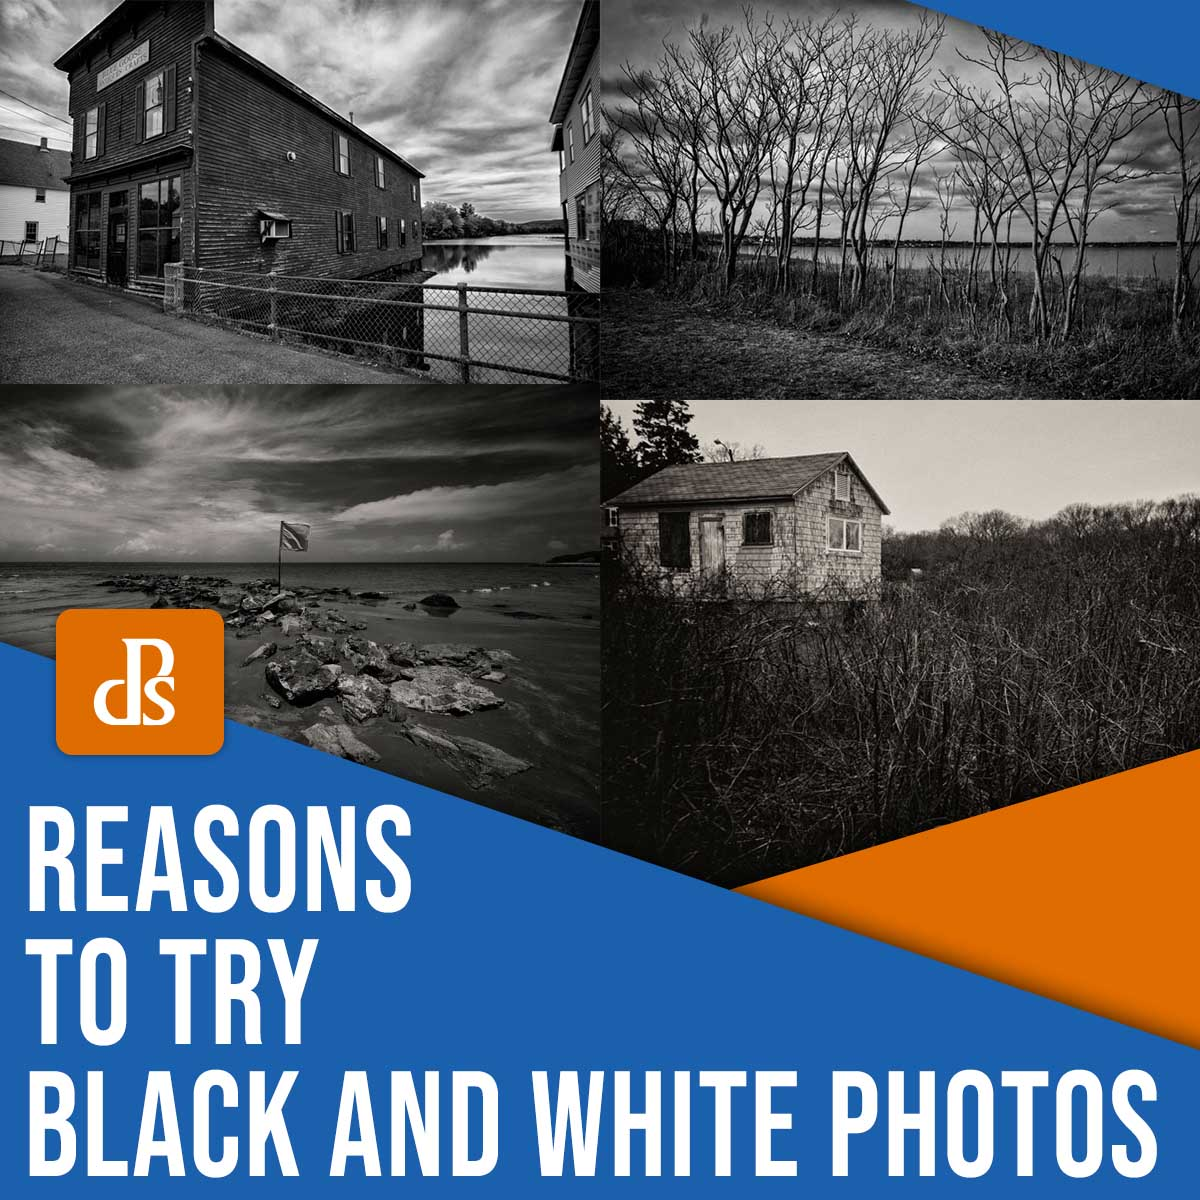 reasons to try black and white photos